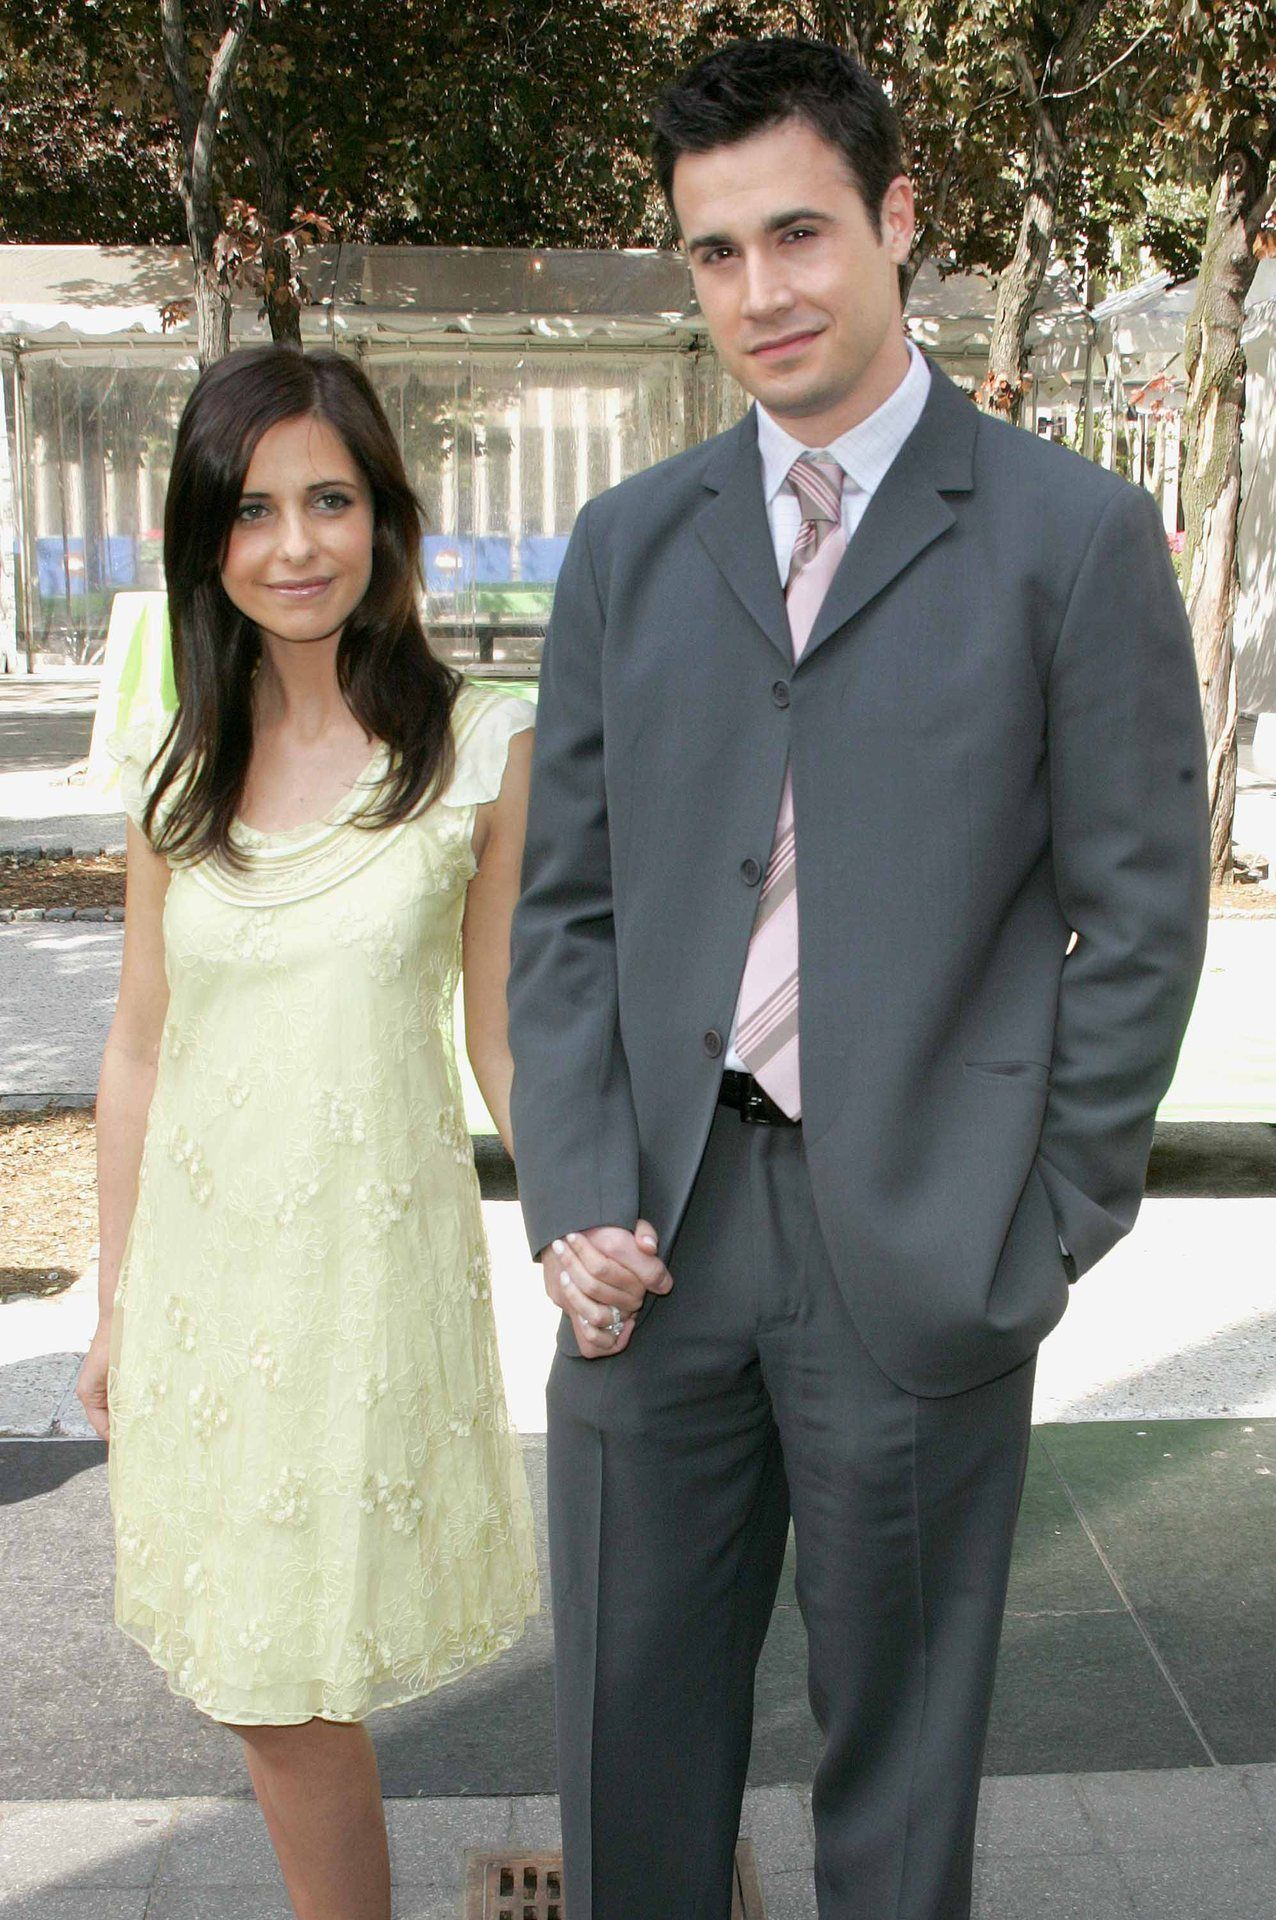 Famous S Photographs Celebrity Sarah Michelle Gellar Fred Prinze Jr